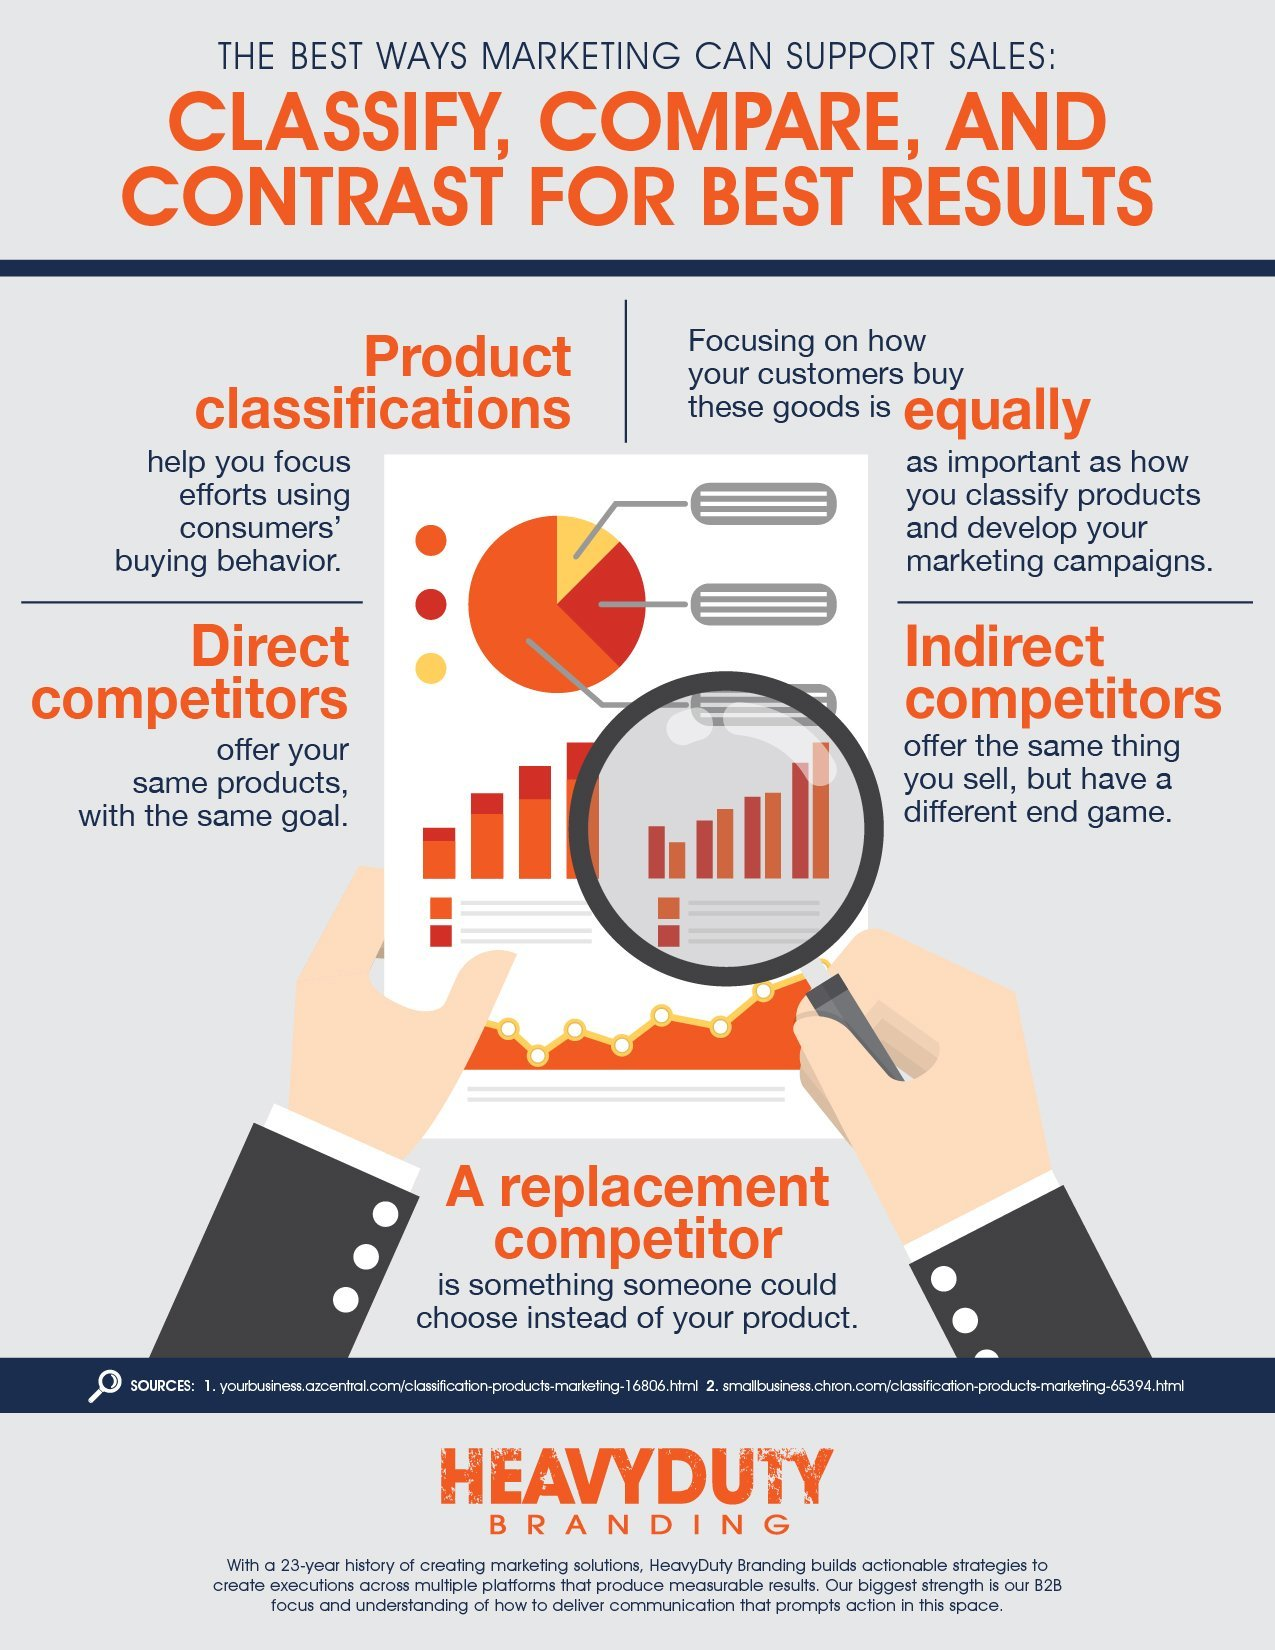 infographic with statistics regarding the best ways marketing can support sales by classifying comparing and contrasting